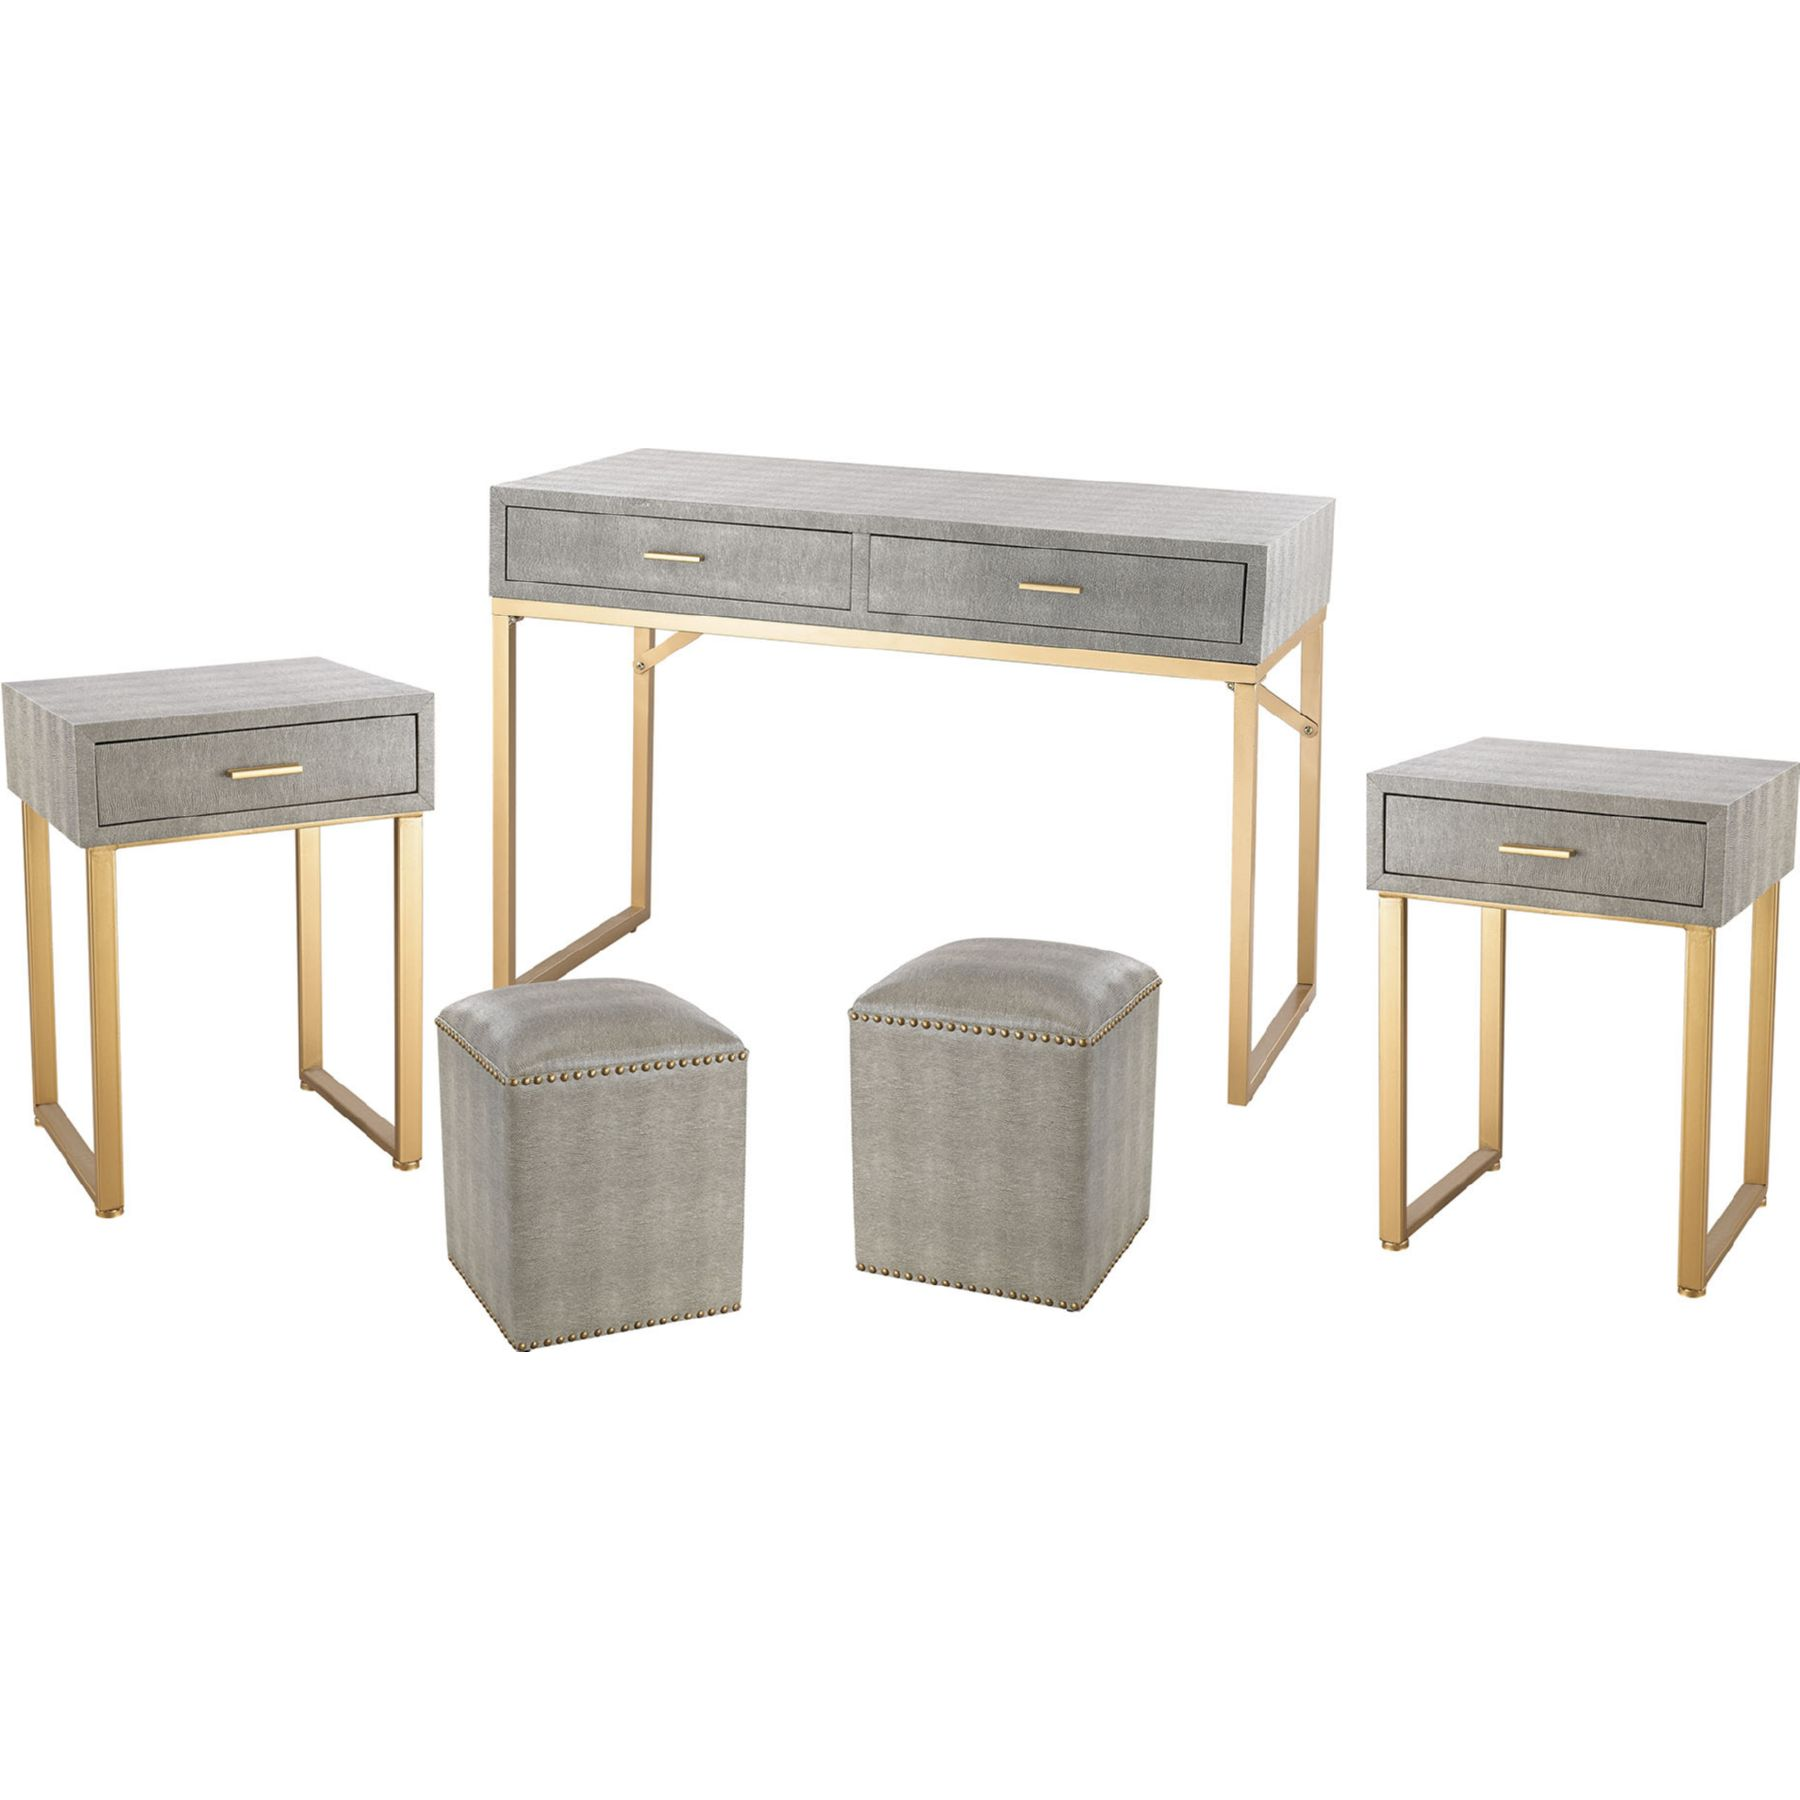 Sterling Industries Beaufort Point 5 Piece Accent Table Stools Set In Grey W Gold Legs